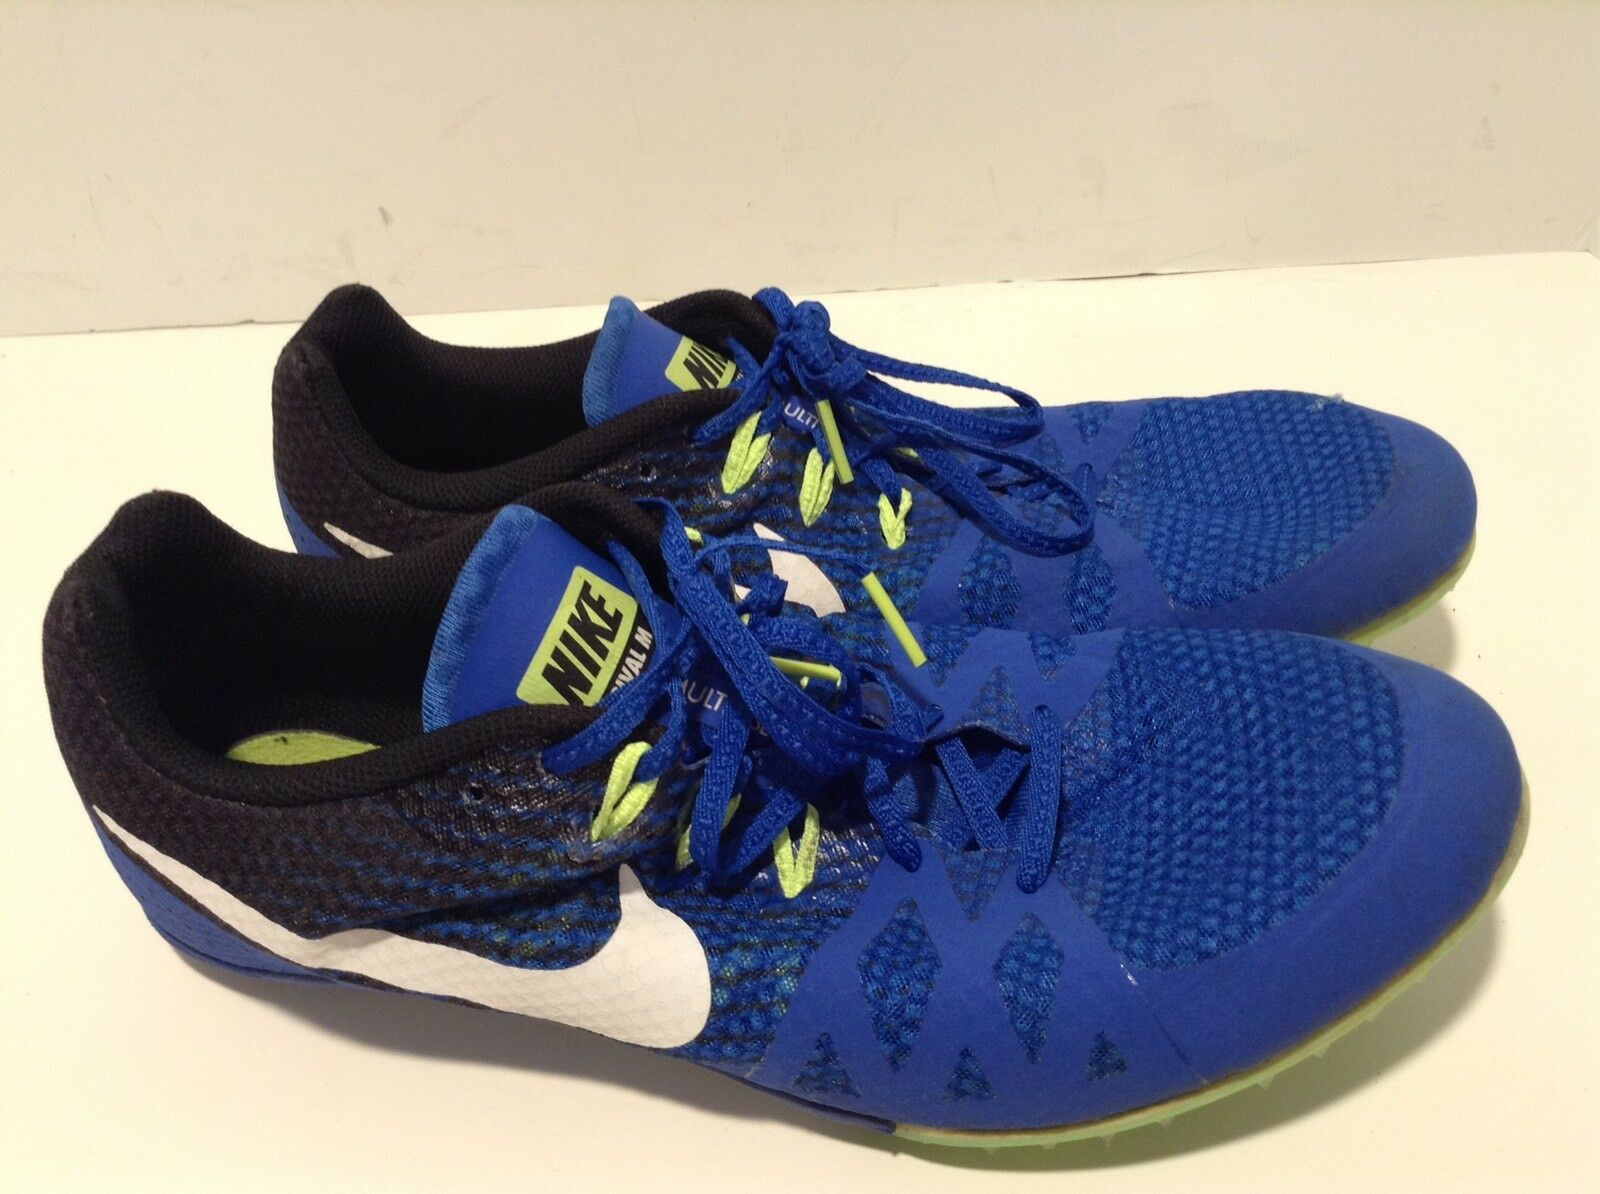 Nike Zoom Rival Track Spike Men Sz 12 Hyper Cobalt/White 806555-413  New shoes for men and women, limited time discount